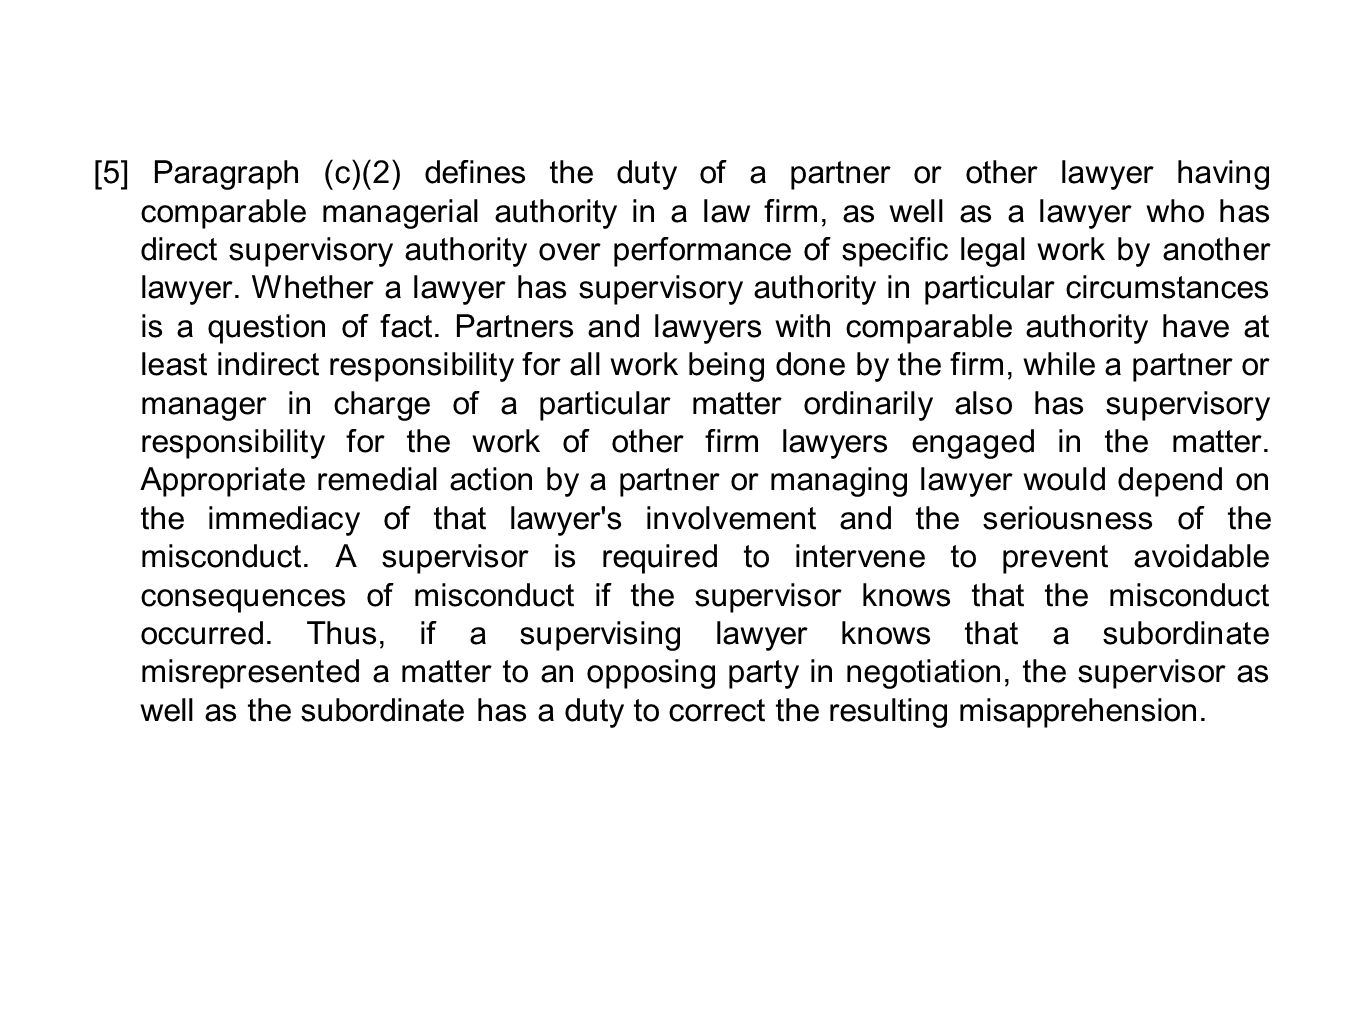 [5] Paragraph (c)(2) defines the duty of a partner or other lawyer having comparable managerial authority in a law firm, as well as a lawyer who has direct supervisory authority over performance of specific legal work by another lawyer.